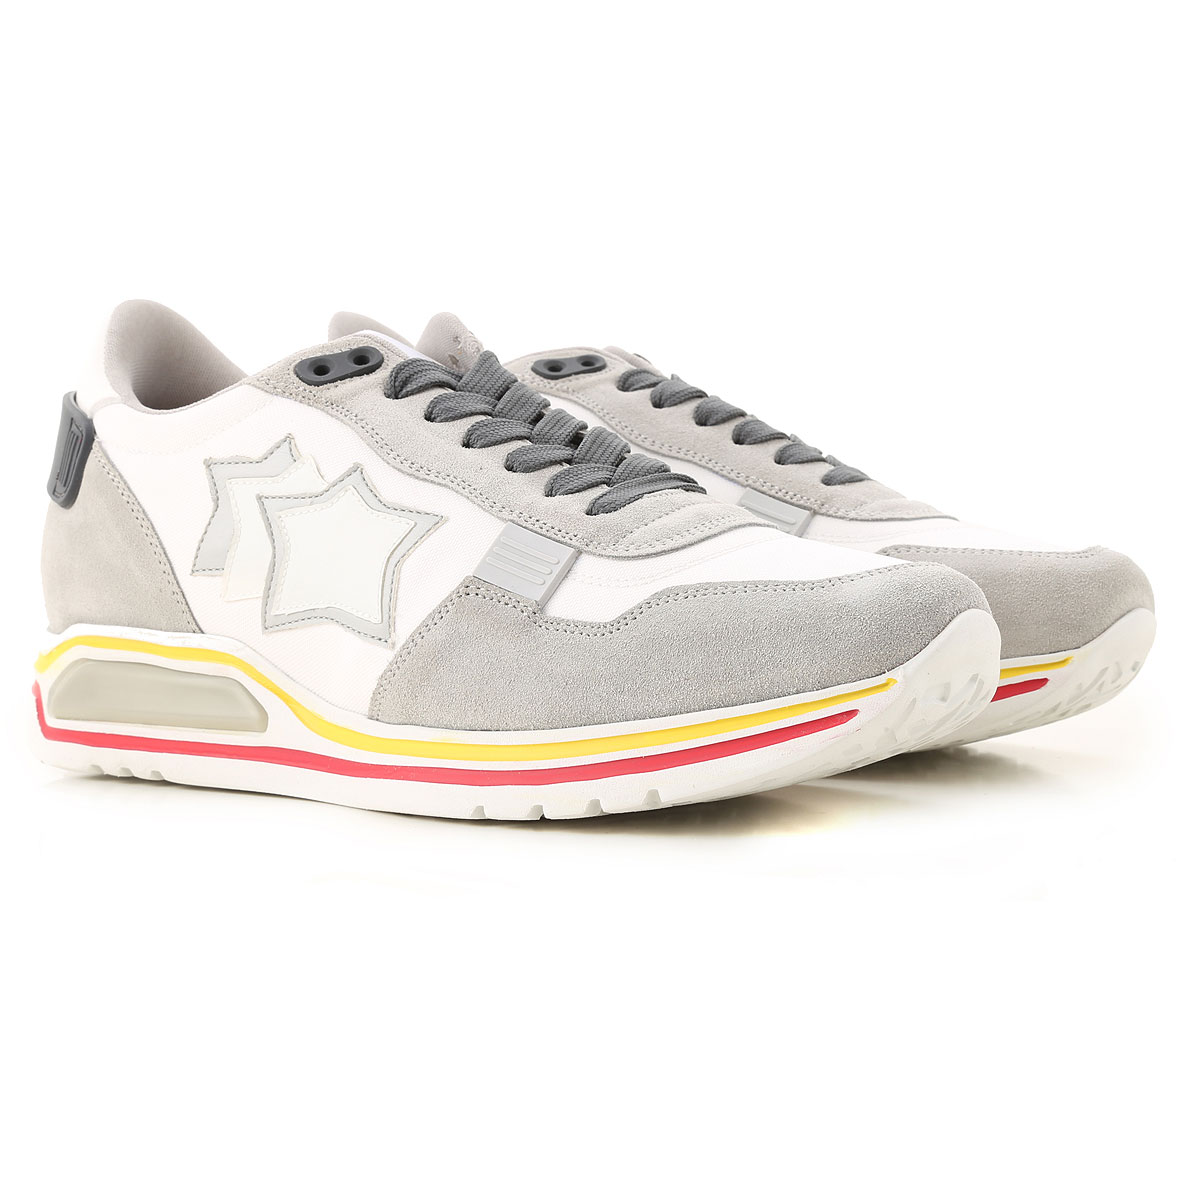 Atlantic Stars Sneakers for Men On Sale in Outlet, White, suede, 2019, 10 10.5 11.5 7.5 9